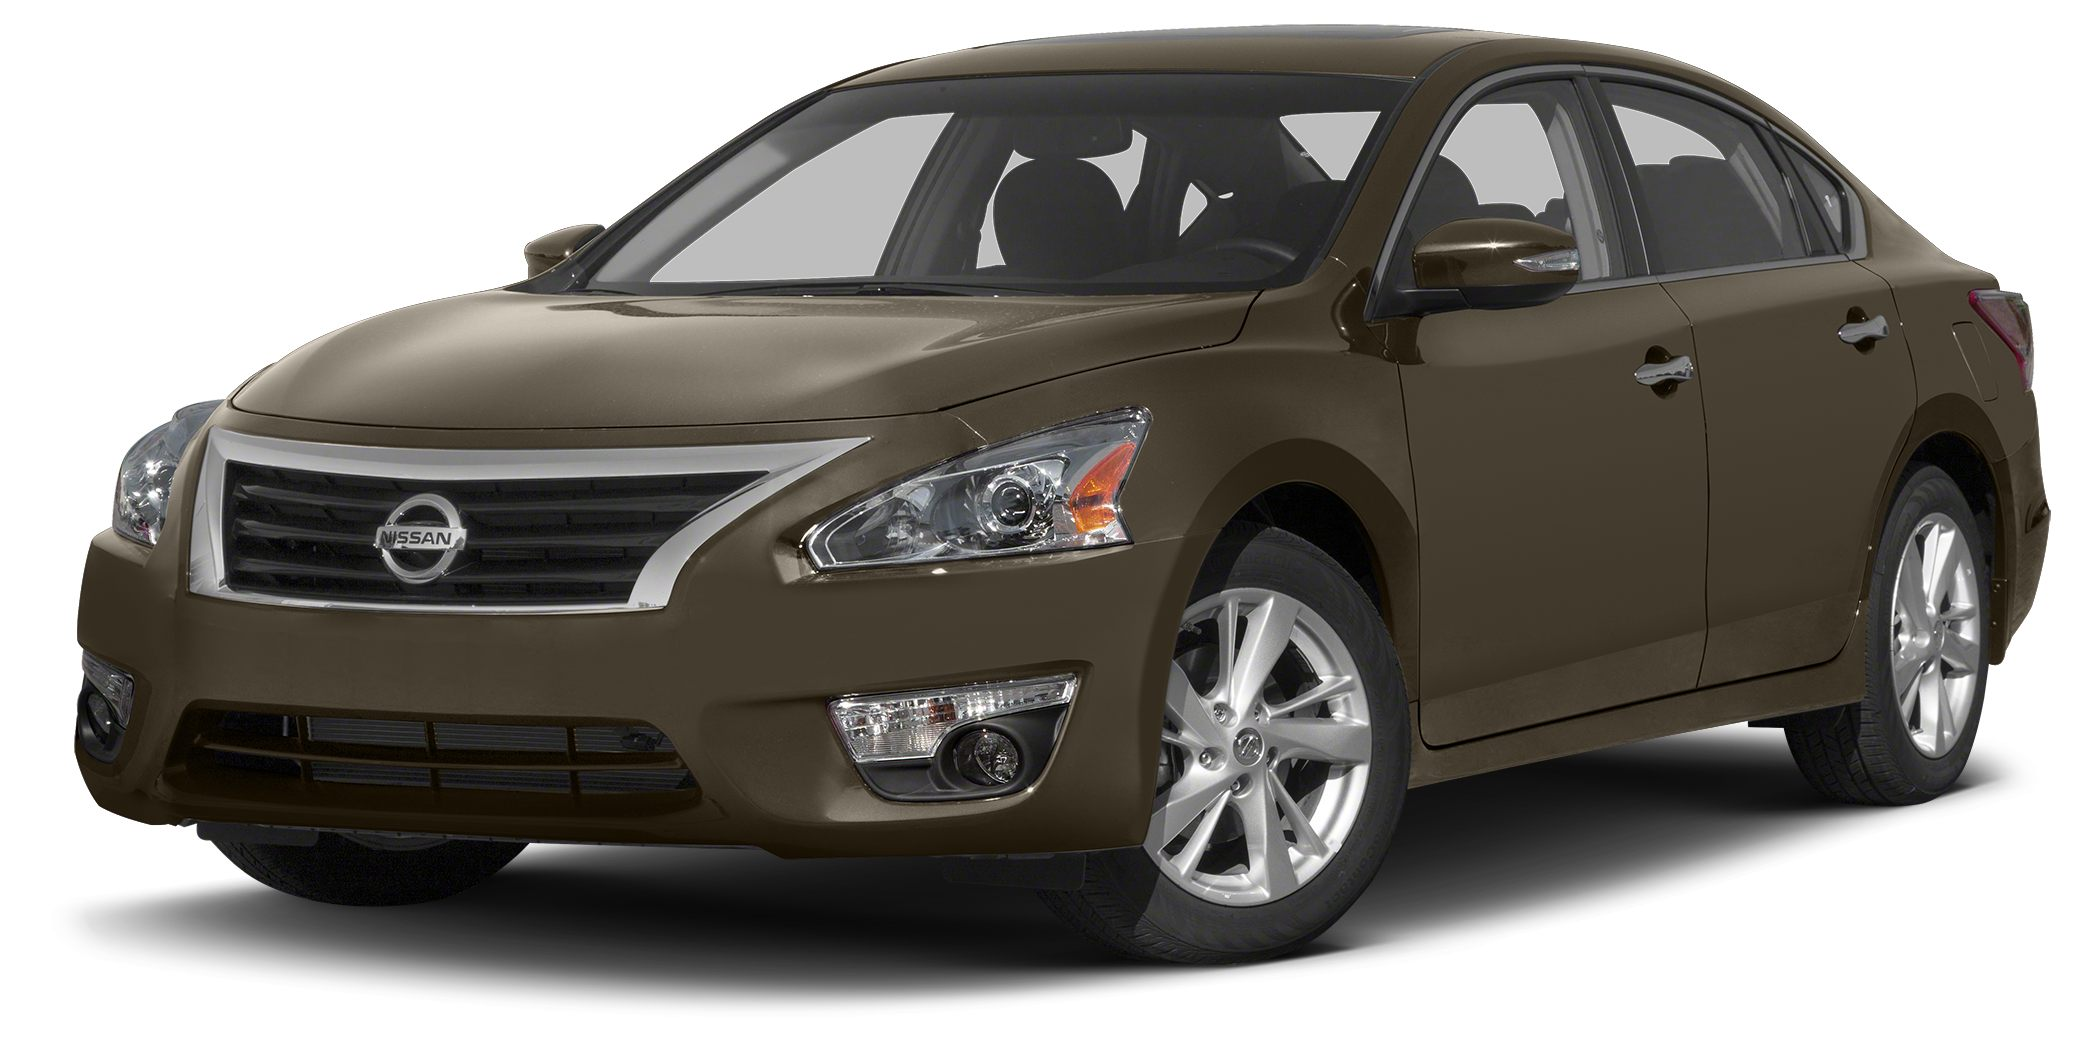 2013 Nissan Altima 25 SL CARFAX One-Owner Clean CARFAX Brown 2013 Nissan Altima 25 SL FWD CVT